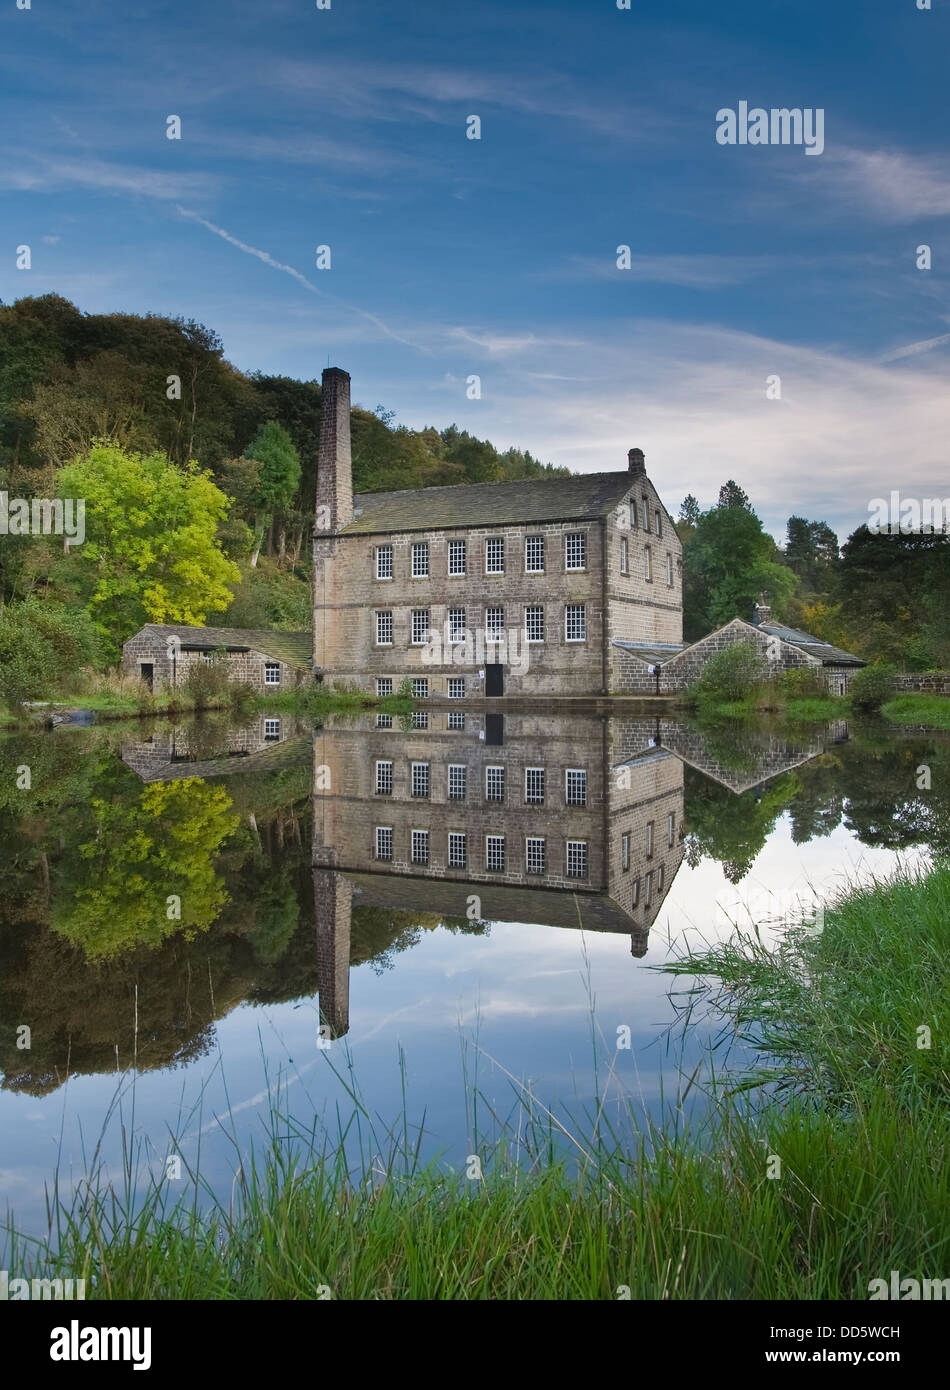 Gibson Mill in Hardcastle Crags nature park, Hebden Bridge, Calderdale, West Yorkshire - Stock Image